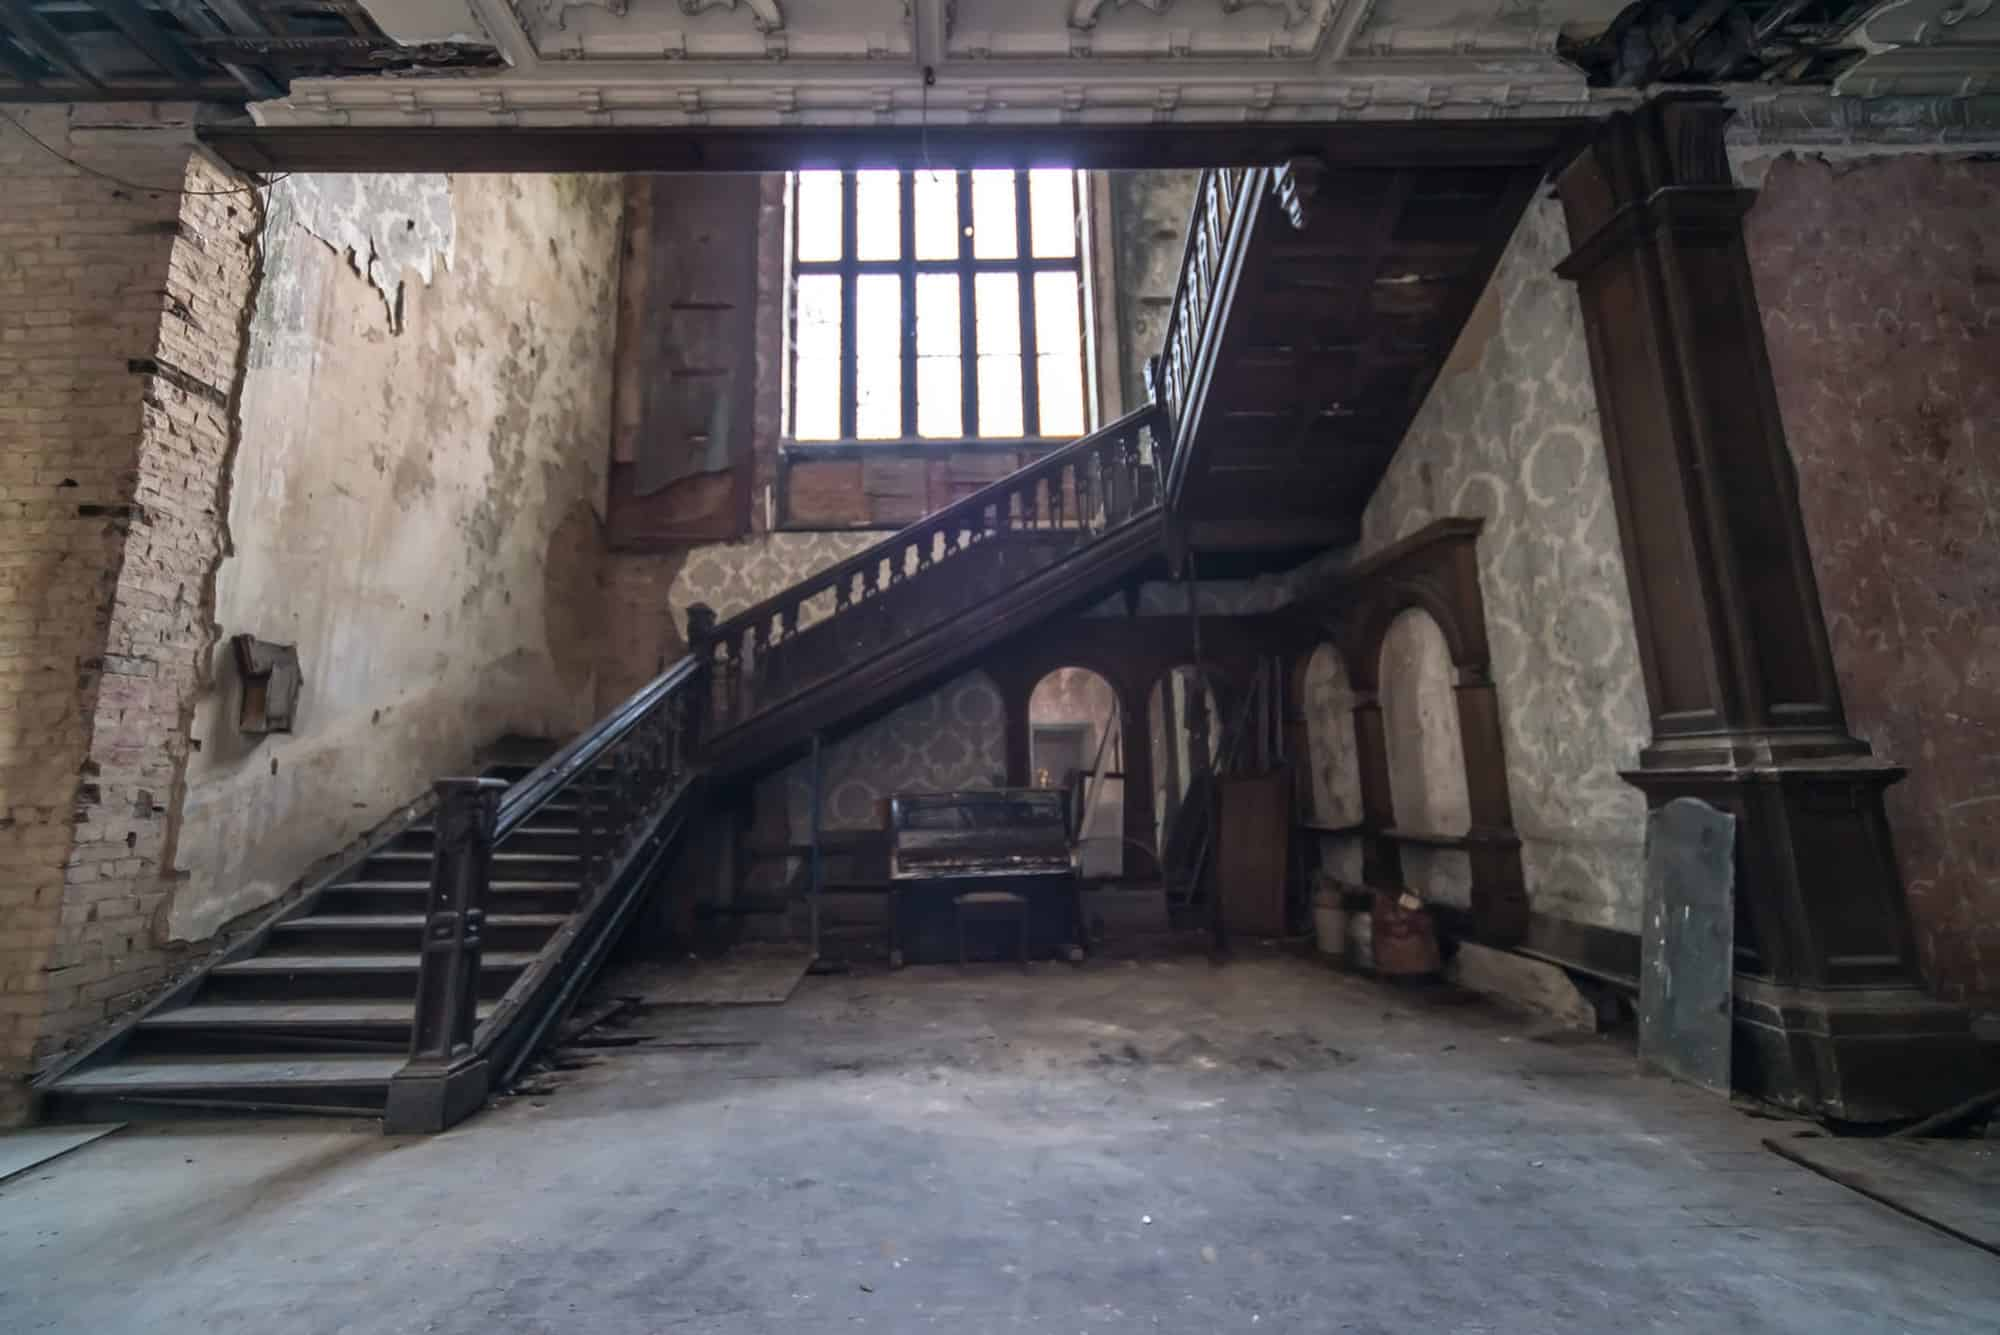 The Abbey PE22 - An incredible Grade I listed Jacobethan style Manor house built in 1845, offering over 100 rooms of derelict, faded grandeur interiors - The Location Guys